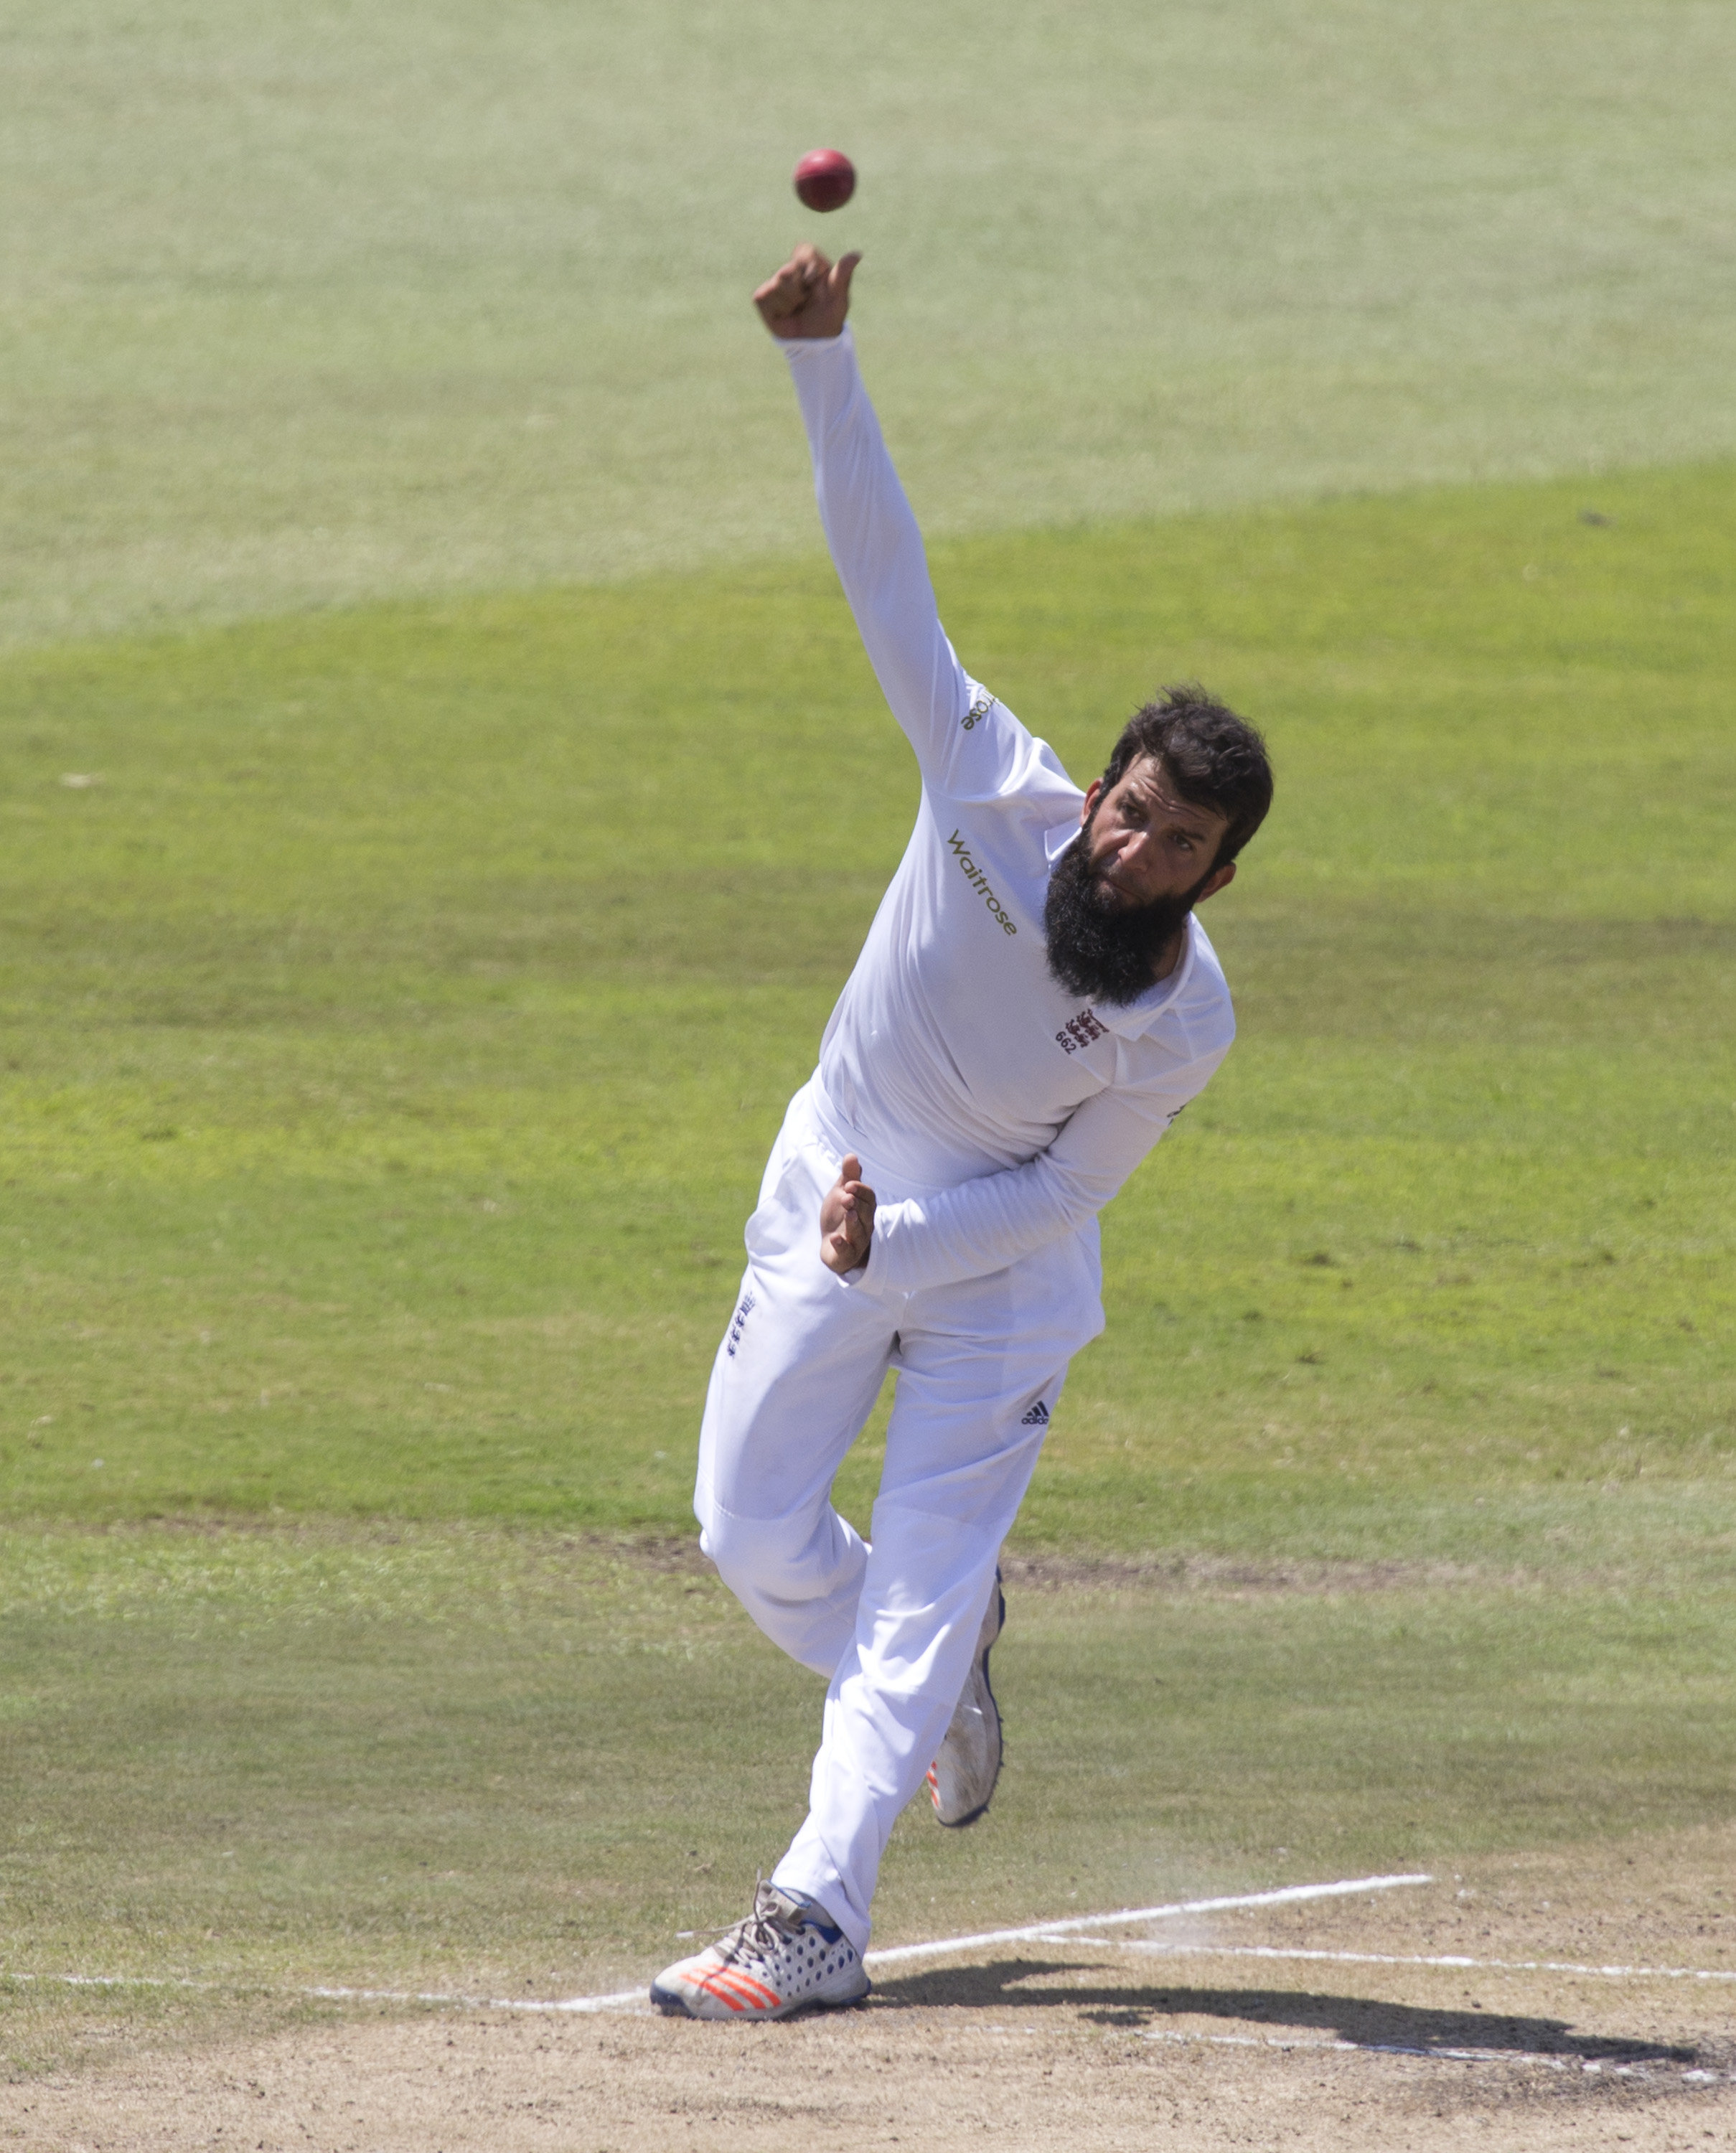 England's Moeen Ali bowls during the first cricket test match against South Africa in Durban, South Africa, December 28, 2015. REUTERS/Rogan Ward